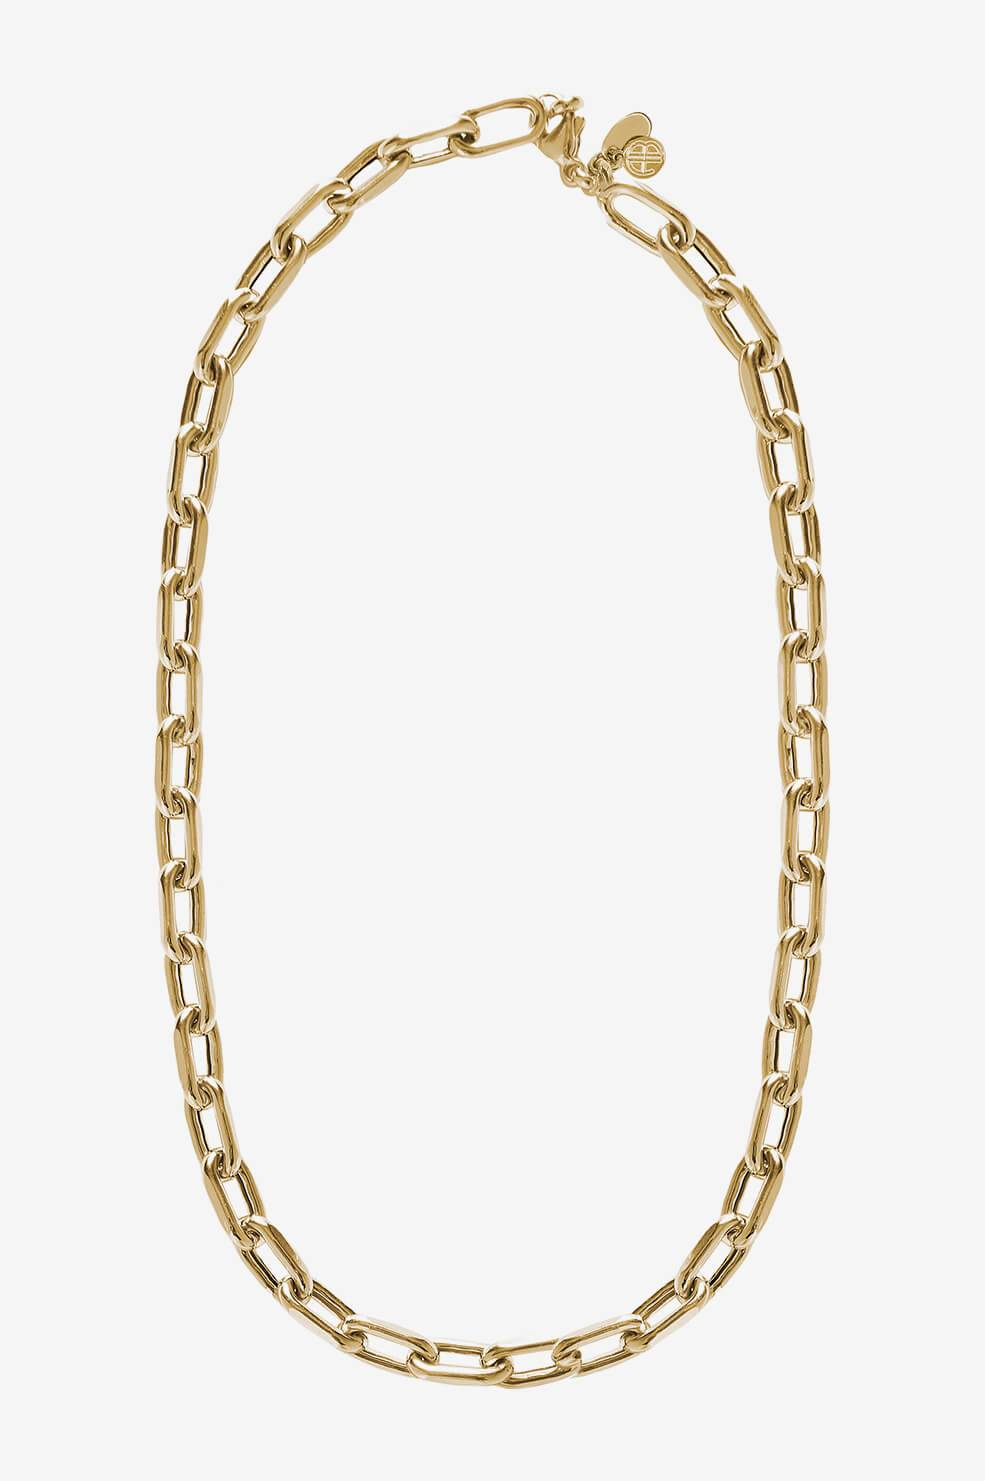 ANINE BING Link Necklace in Gold  - 14k Yellow Gold - Size: One Size